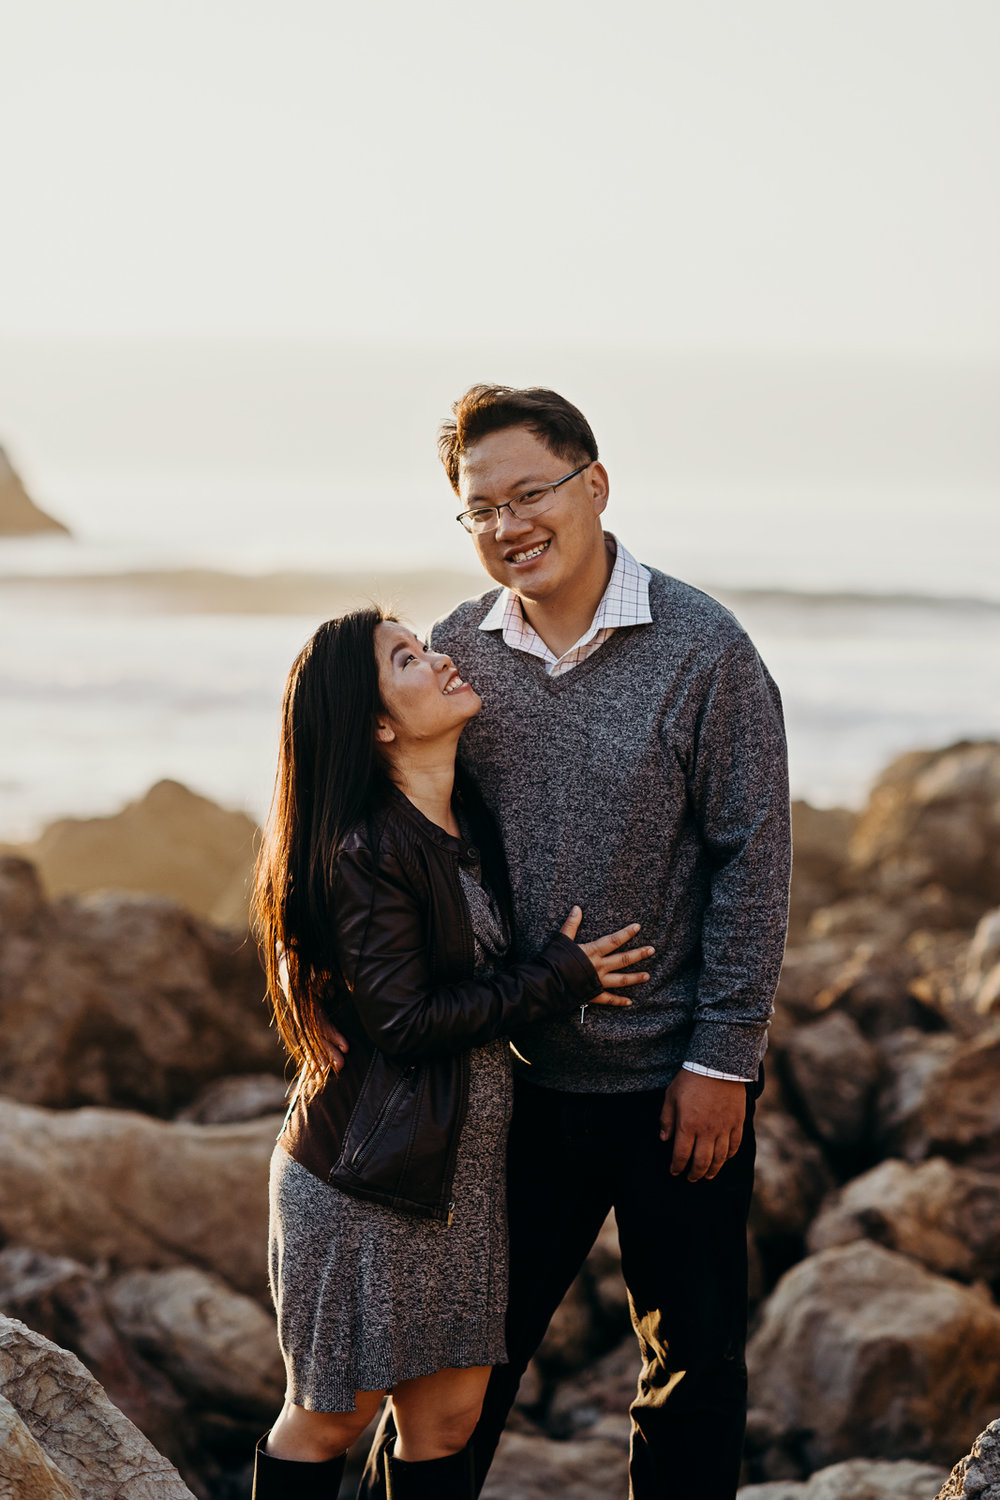 Man smiles at the camera as his fiance admires him.